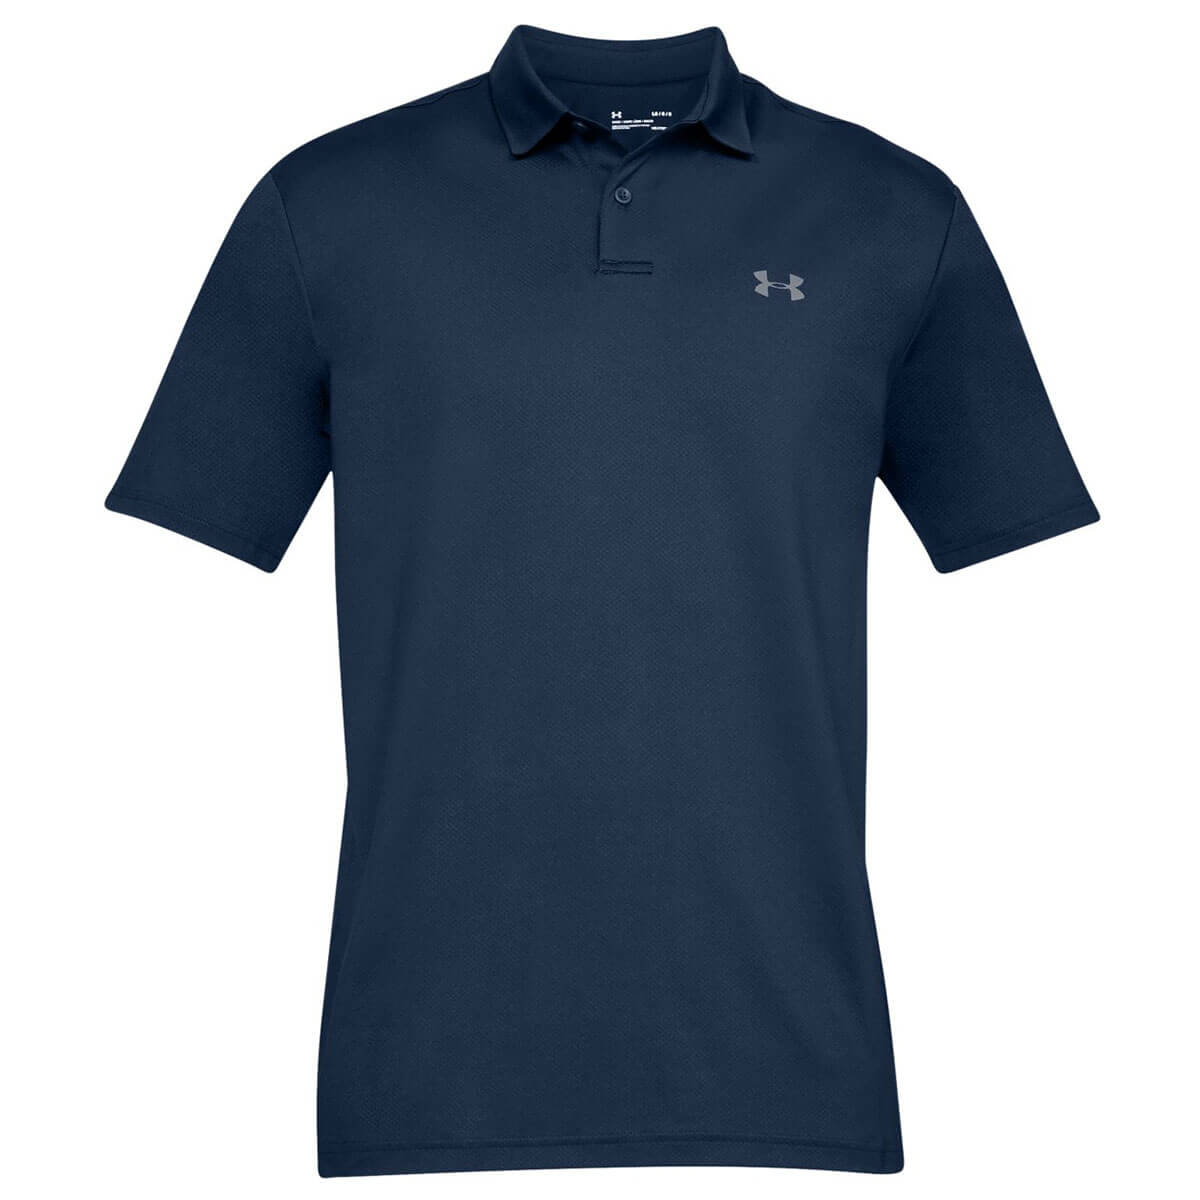 Under-Armour-Mens-2019-Performance-2-0-Stretch-Durable-Smooth-Golf-Polo-Shirt thumbnail 4